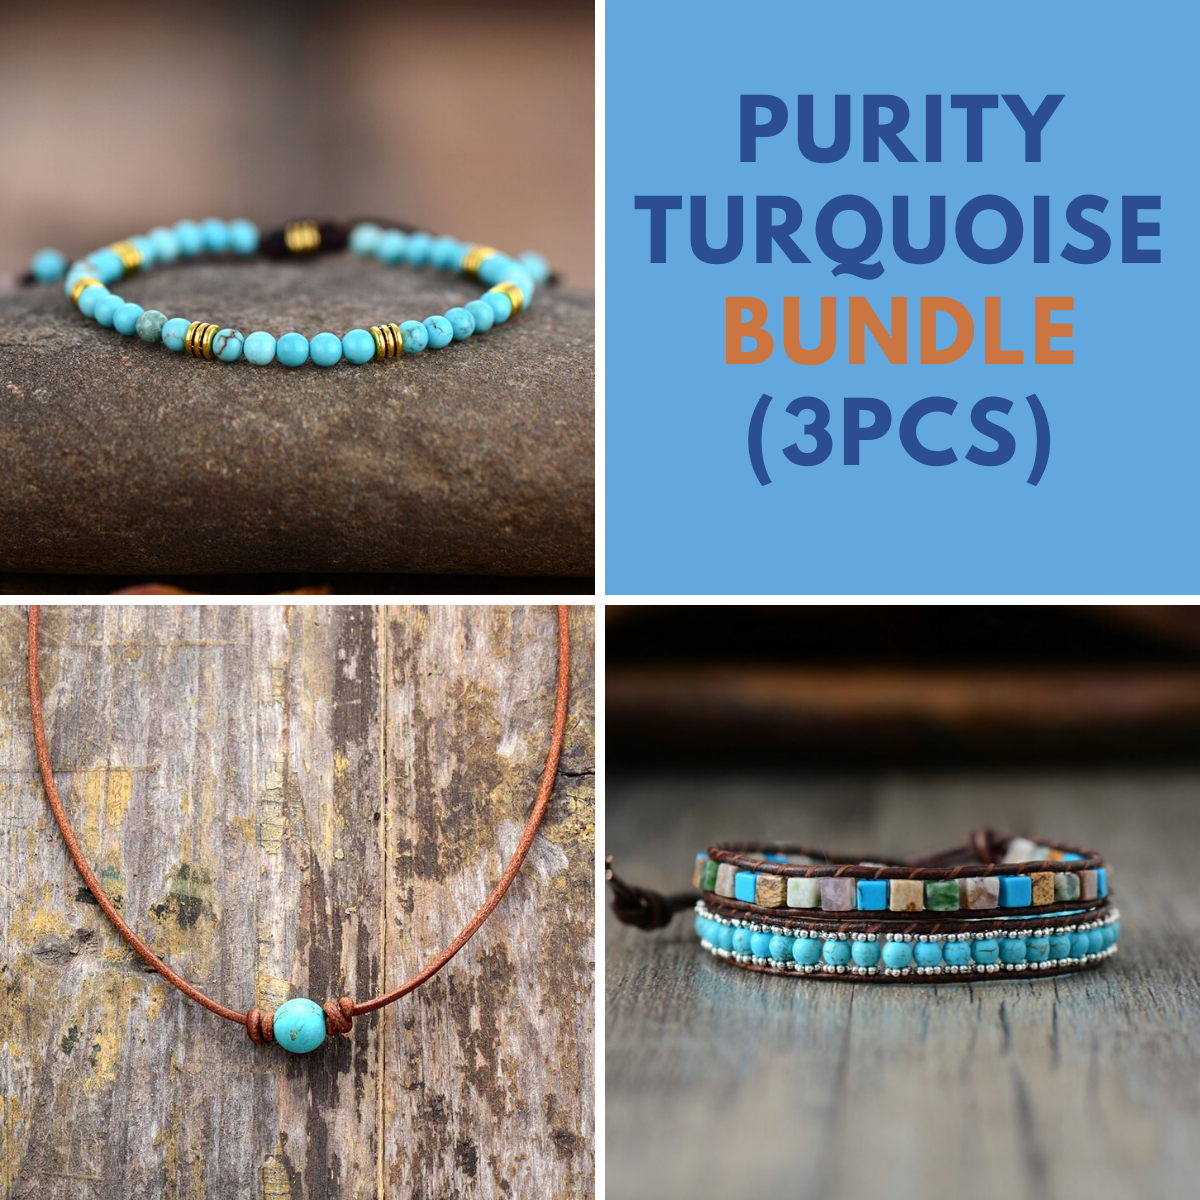 Purity Turquoise Bundle